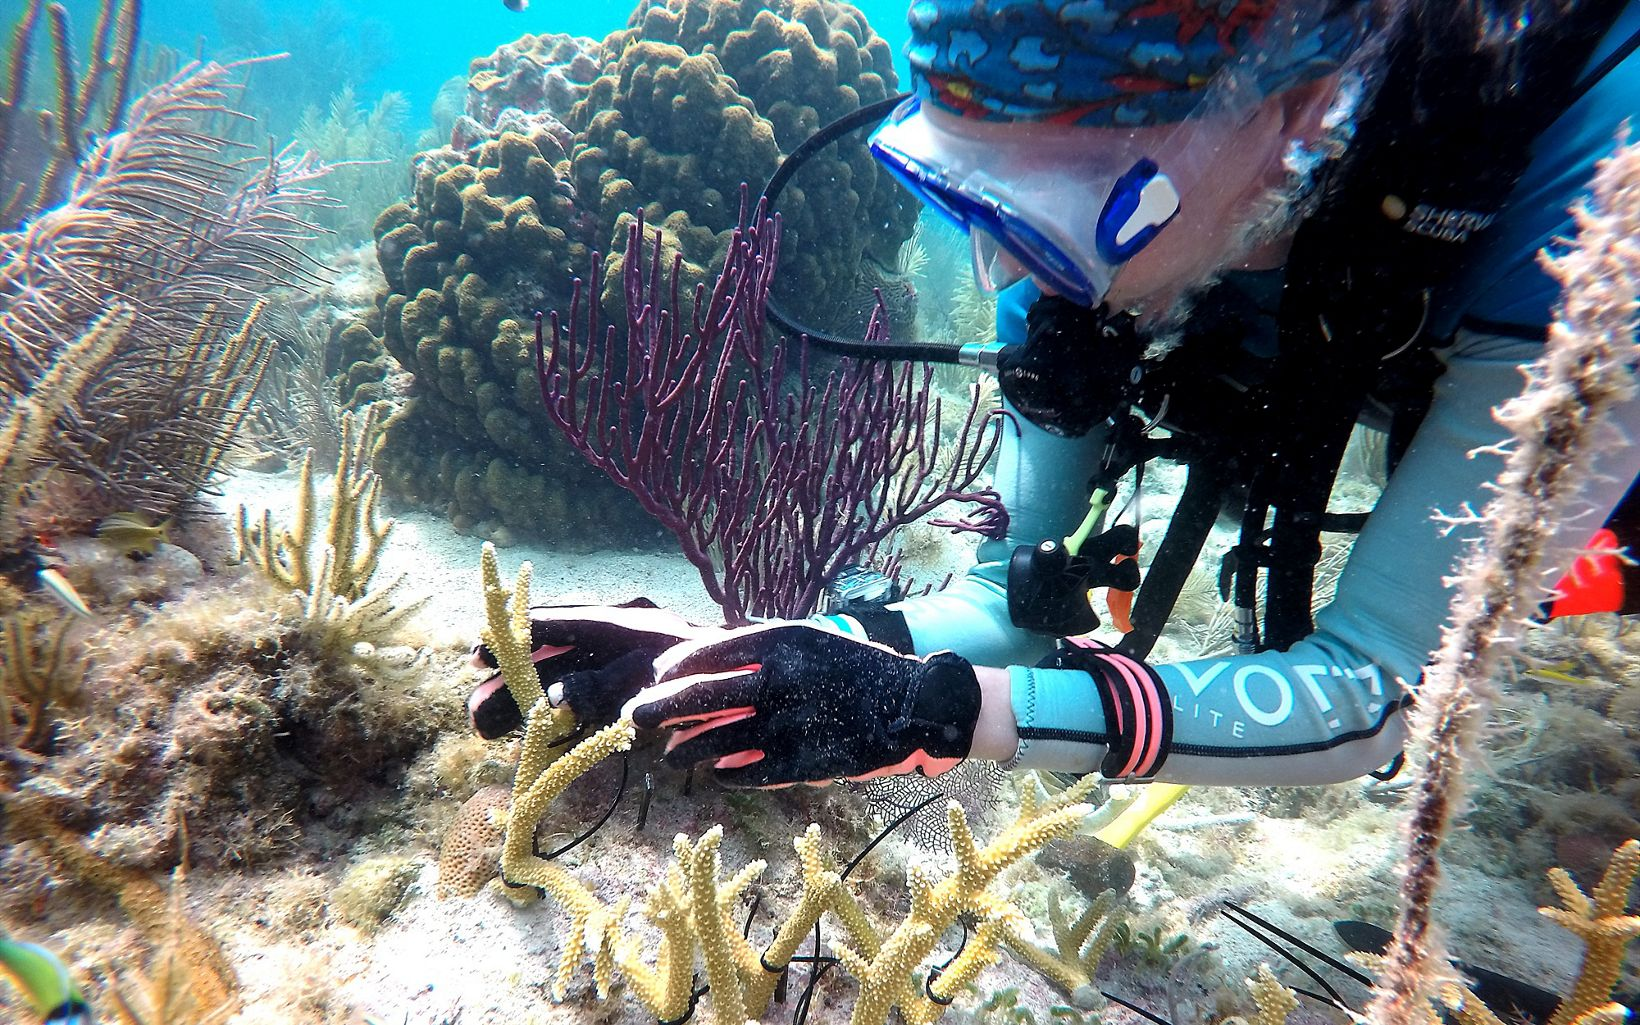 Coral planting in Dry Tortugas National Park